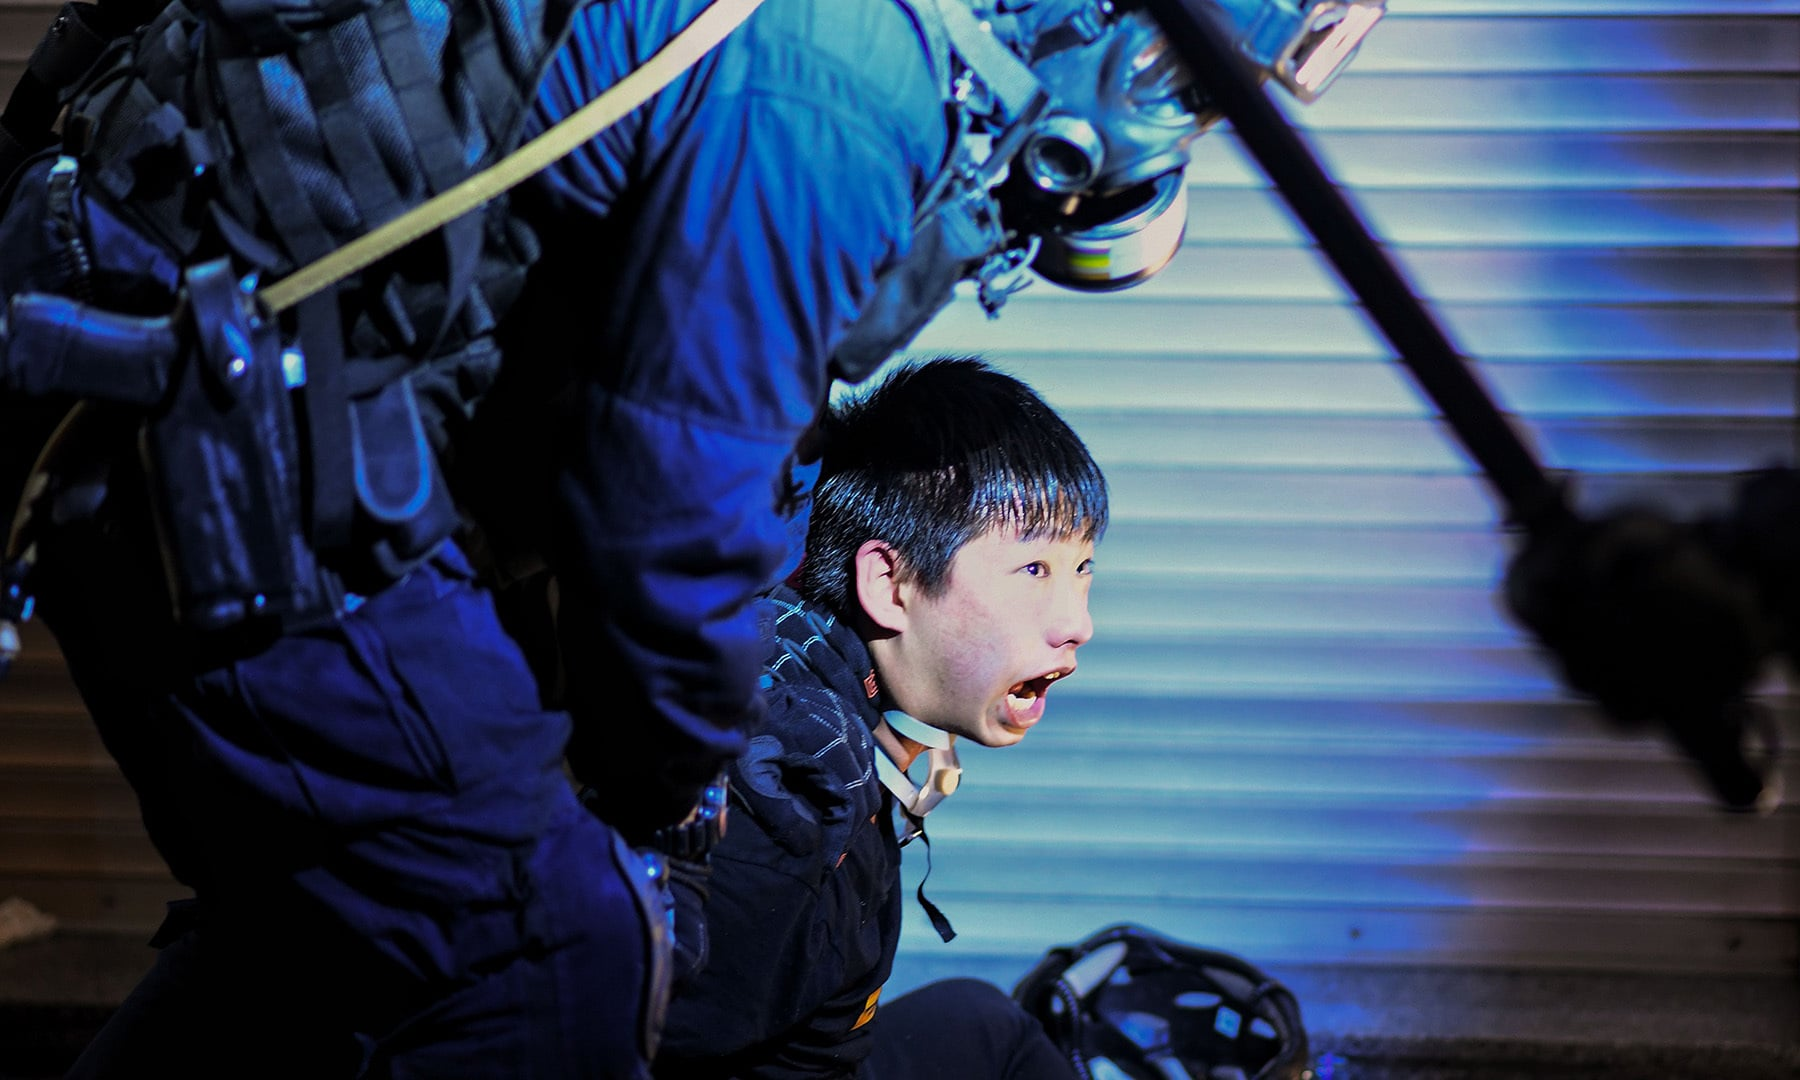 A pro-democracy protester is held by police outside Tsim Sha Tsui Police station during a demonstration against the controversial extradition bill in Hong Kong on August 11. — AFP